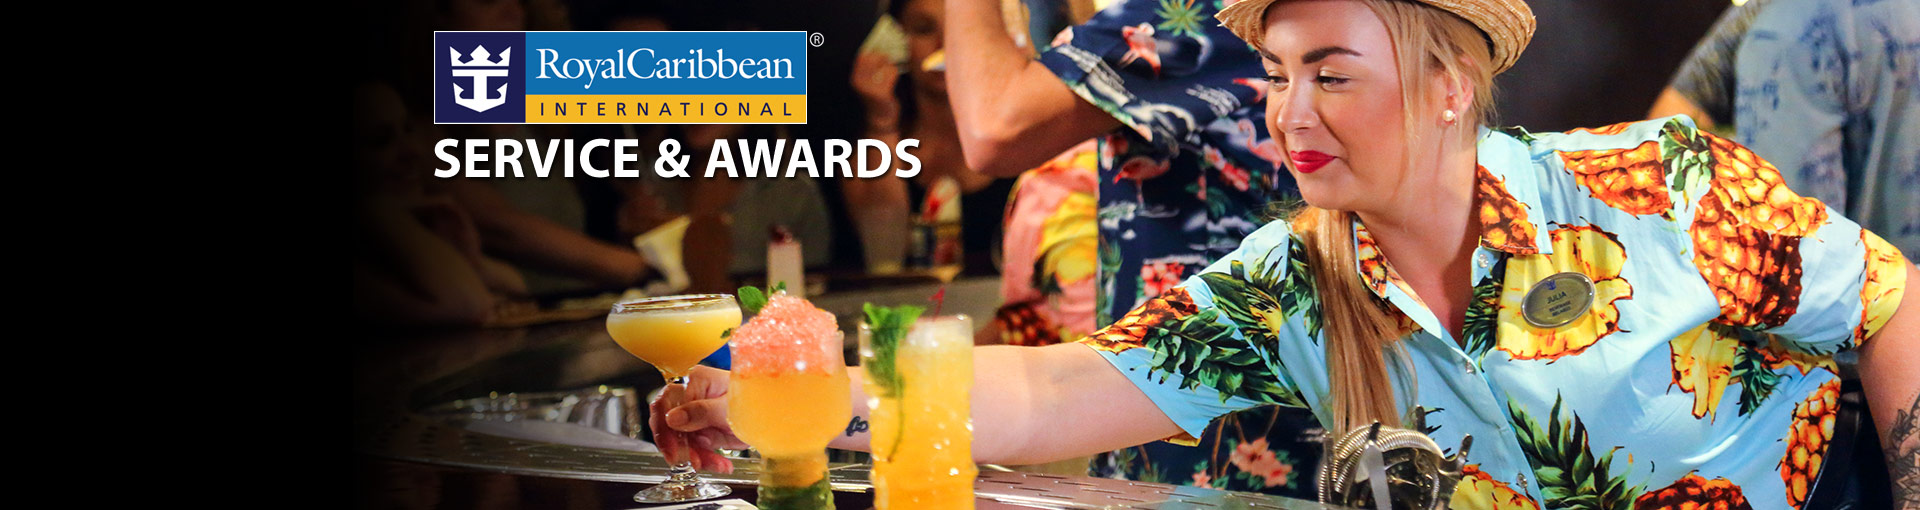 Royal Caribbean Service & Awards